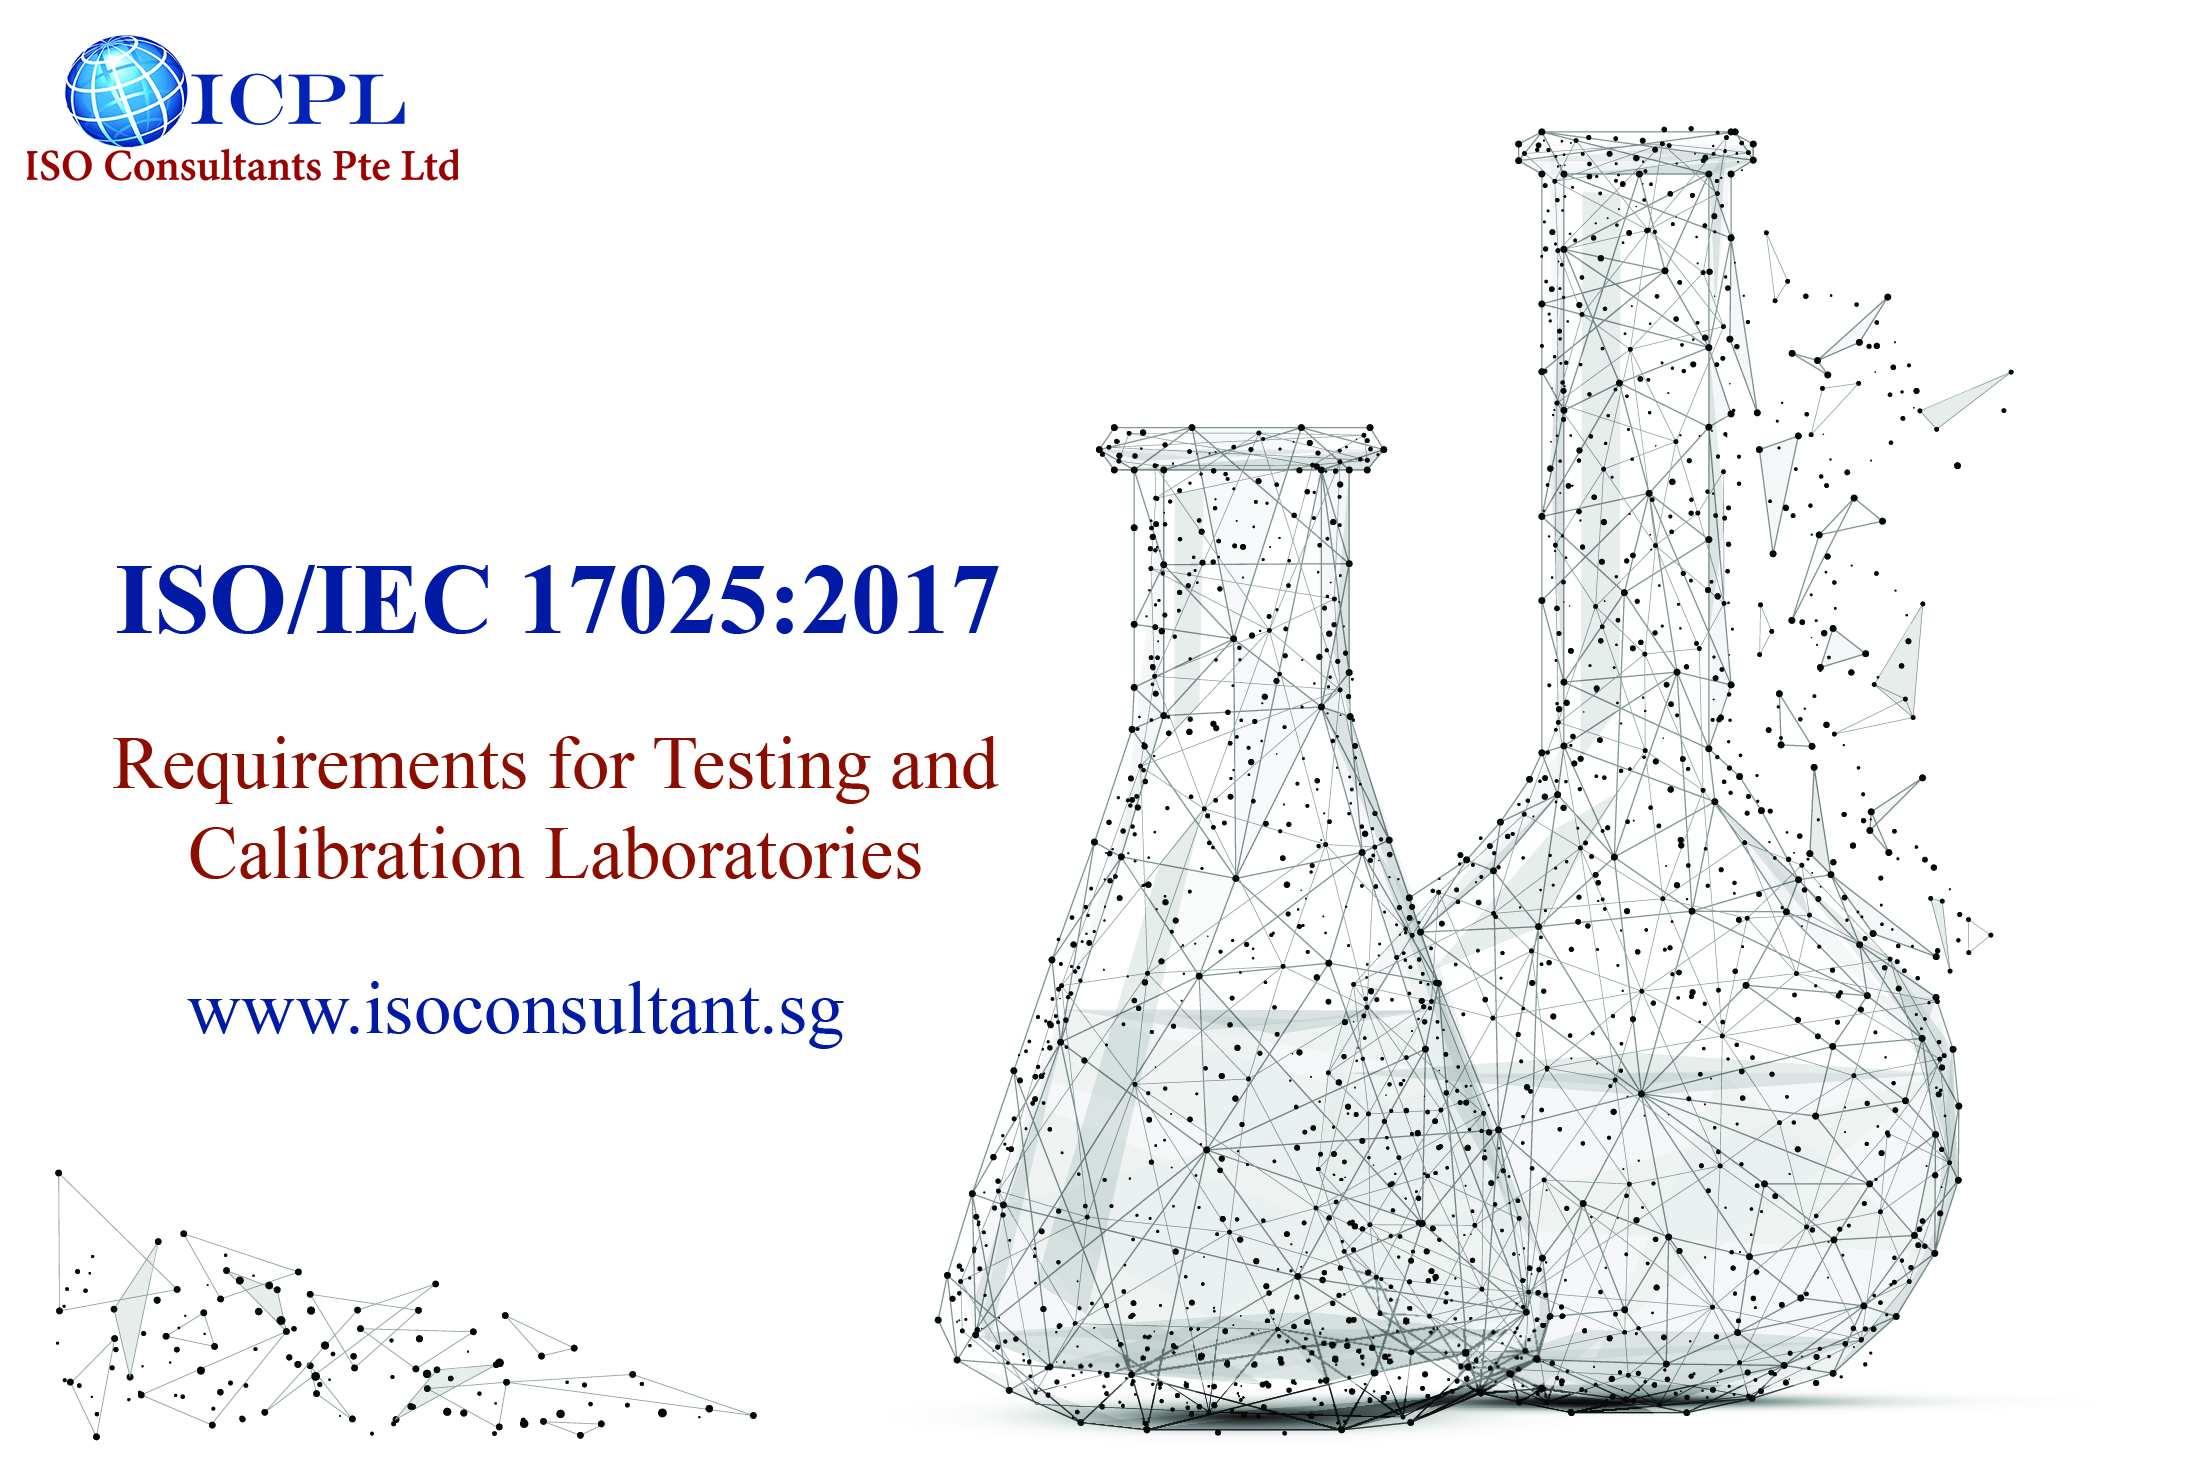 ISO 17025 - The Competence Of Testing and Calibration Laboratories